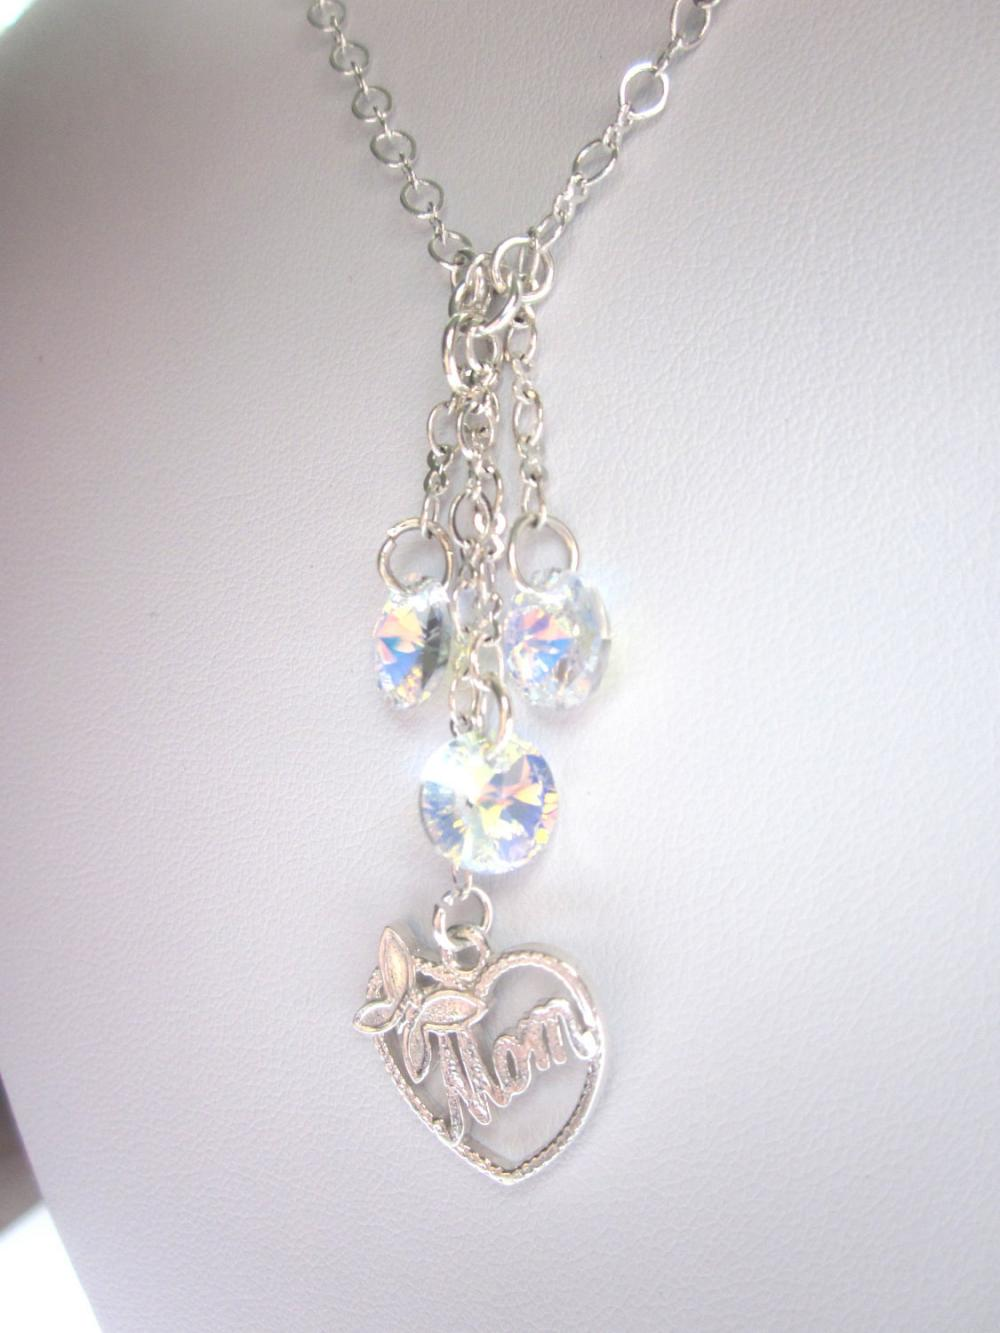 MOM Necklace, Swarovski Crystal Tassle , sterling silver butterfly heart MOM charm, Mothers Day, sparkle